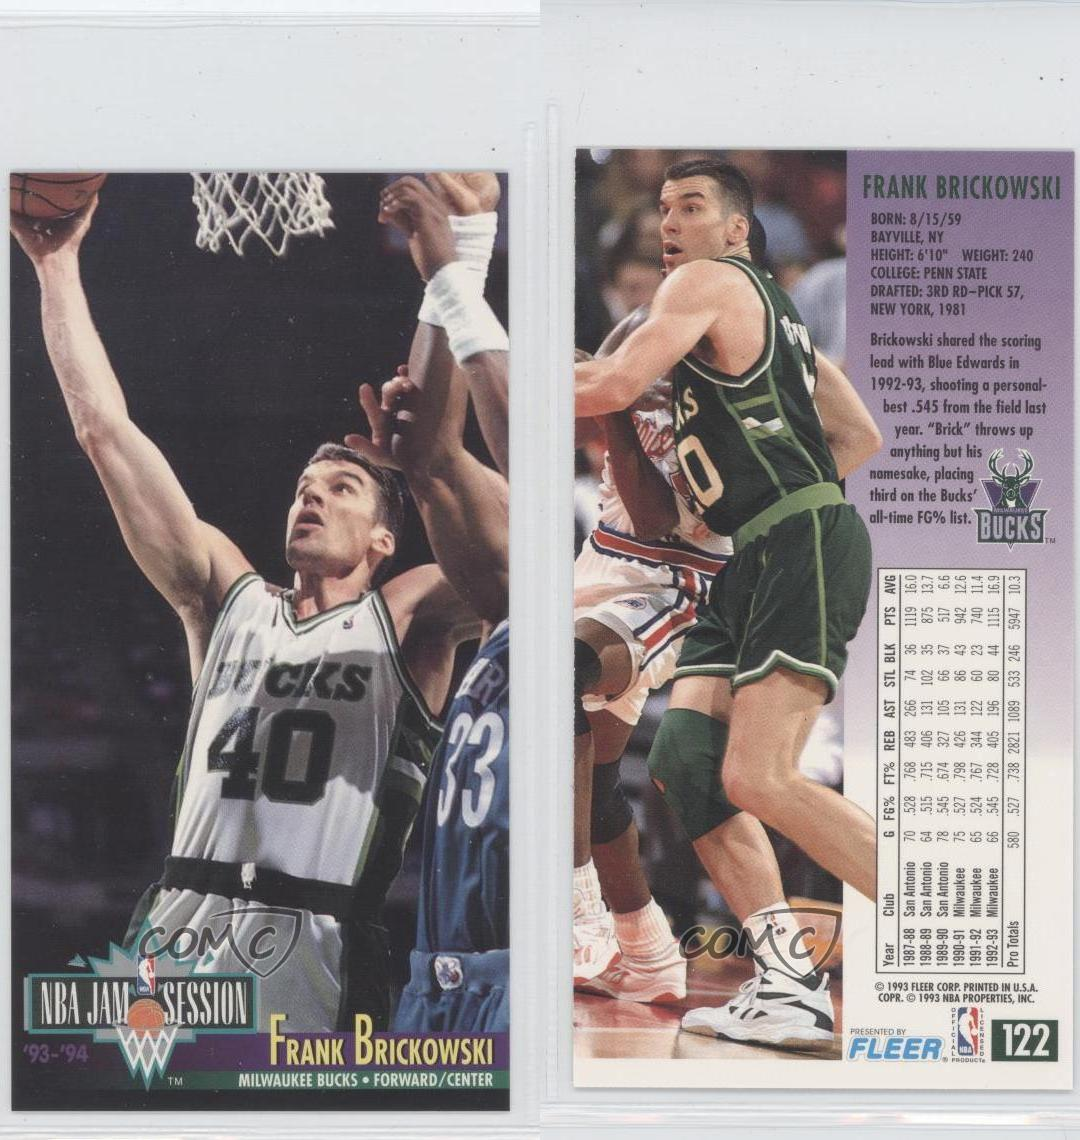 1993-94 NBA Jam Session #122 Frank Brickowski Milwaukee